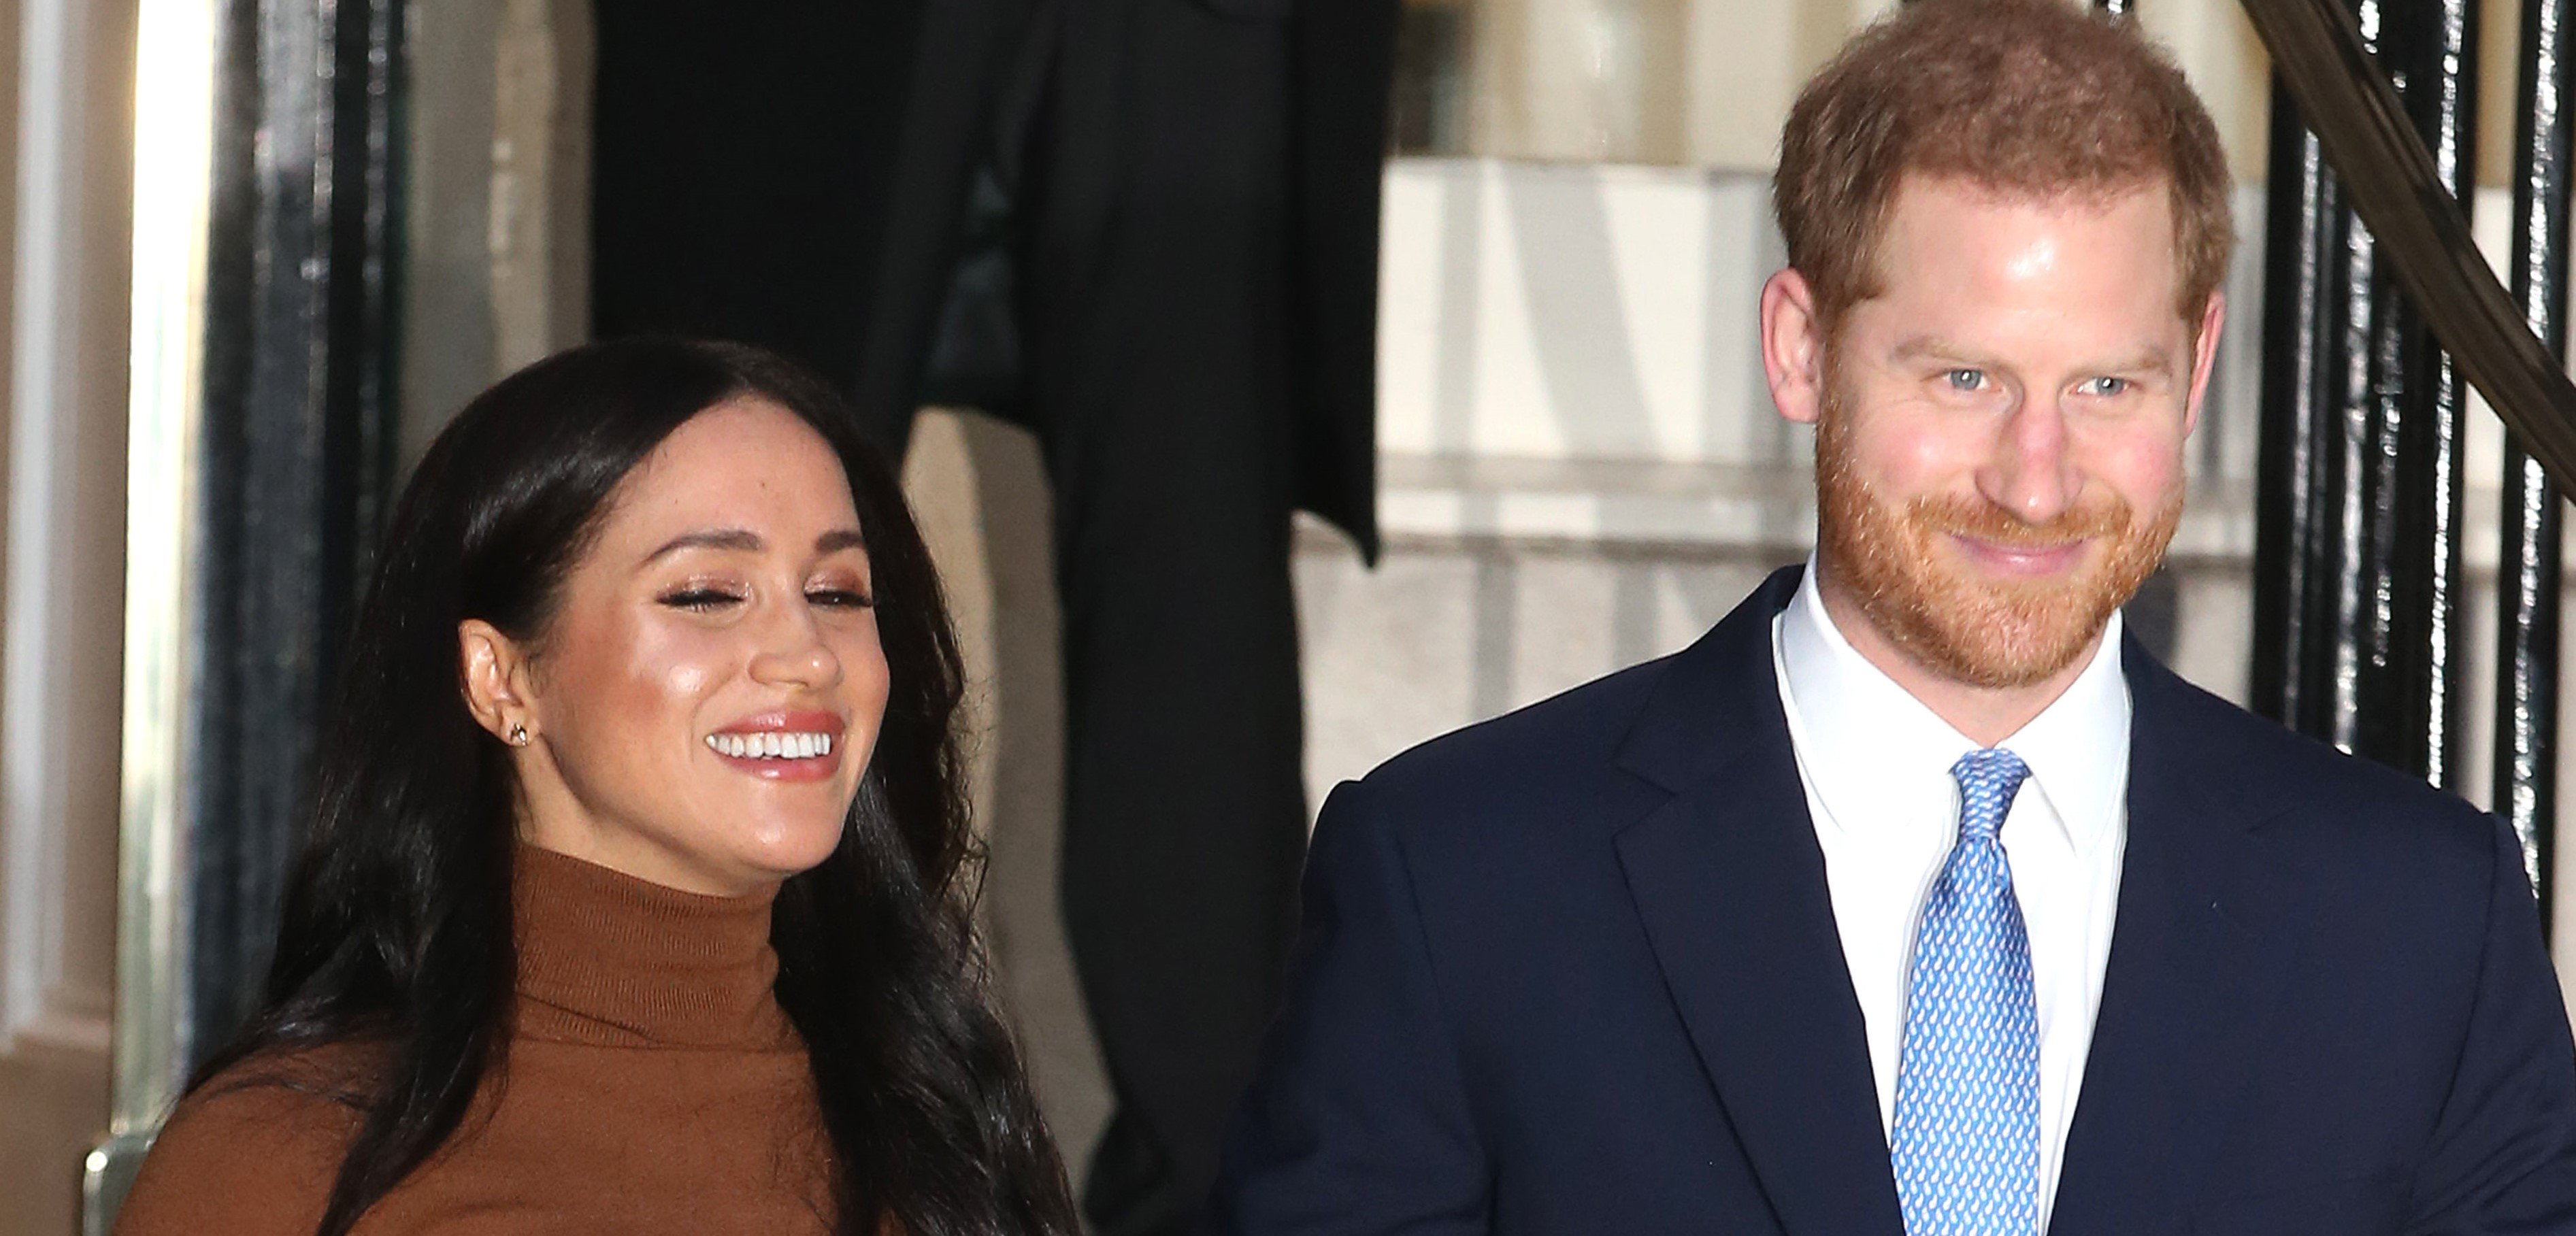 Meghan and Harry 'agree to tell-all interview' after quitting royal family